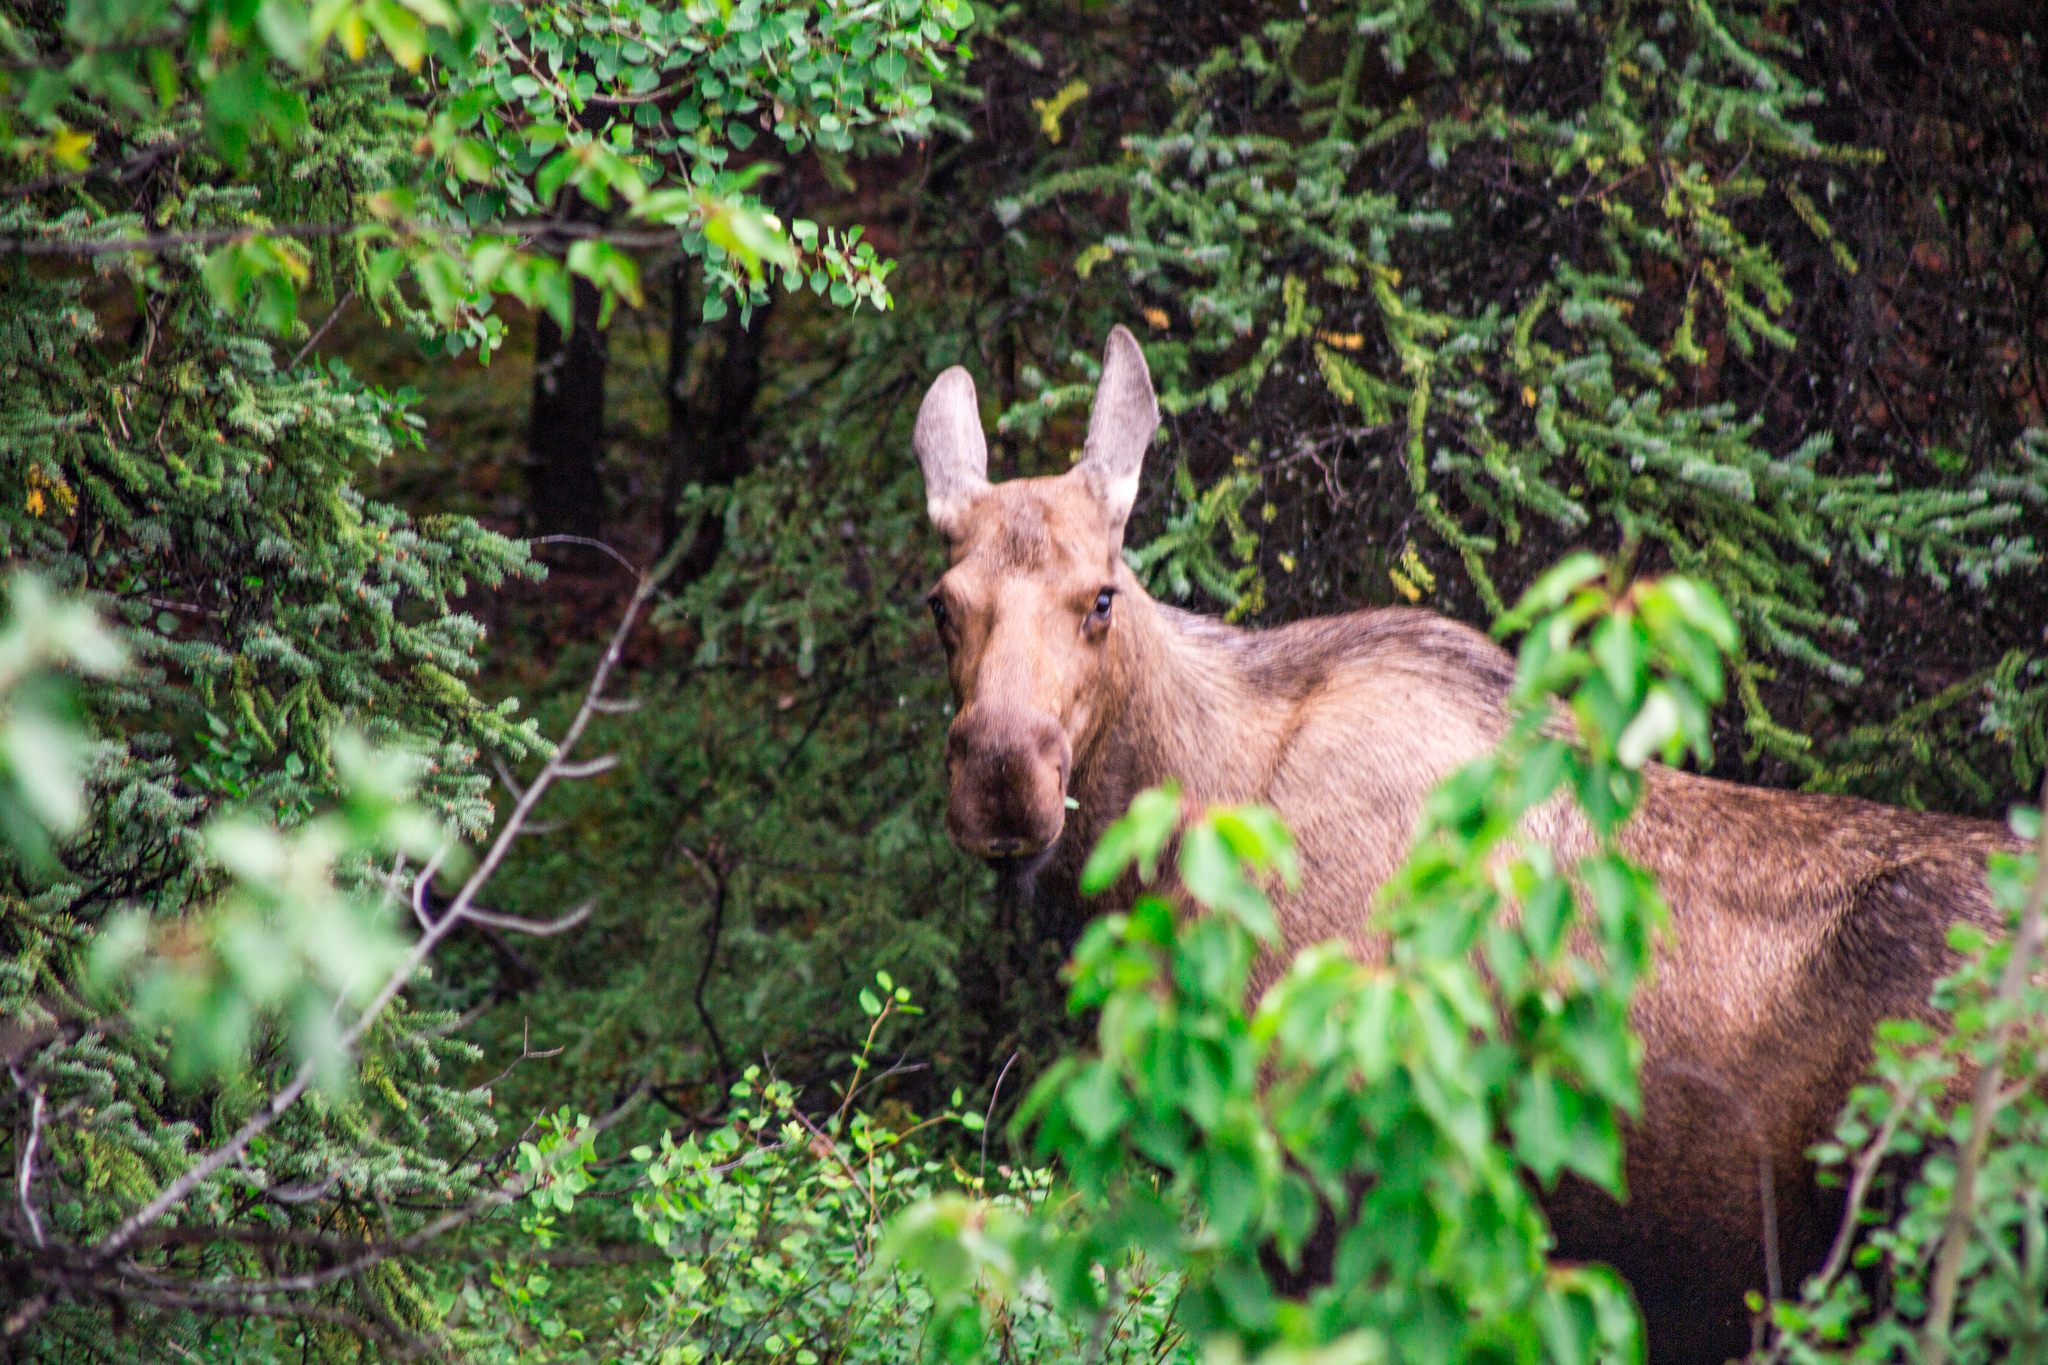 No worries here... I was actually quite far away from this Moose. :)